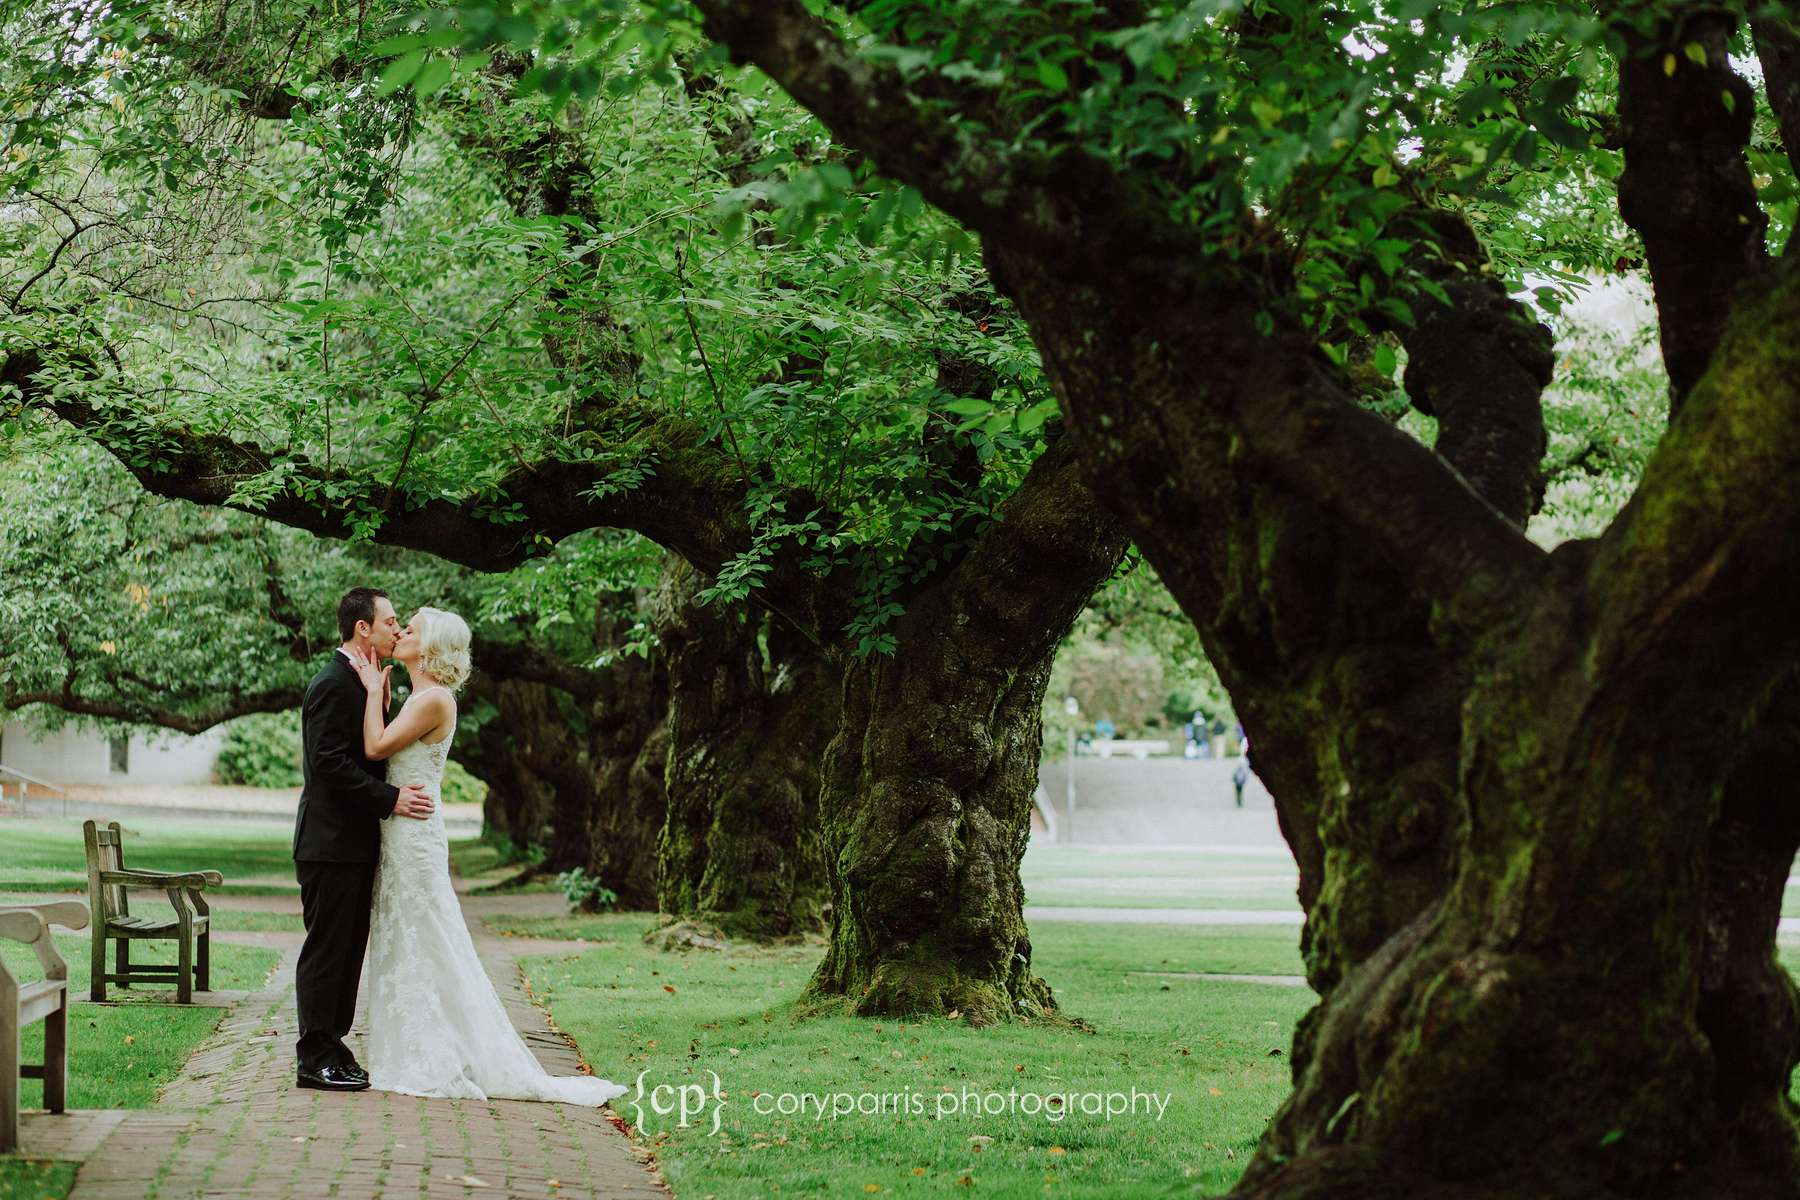 A wedding portrait at the Quad at the University of Washington in Seattle.